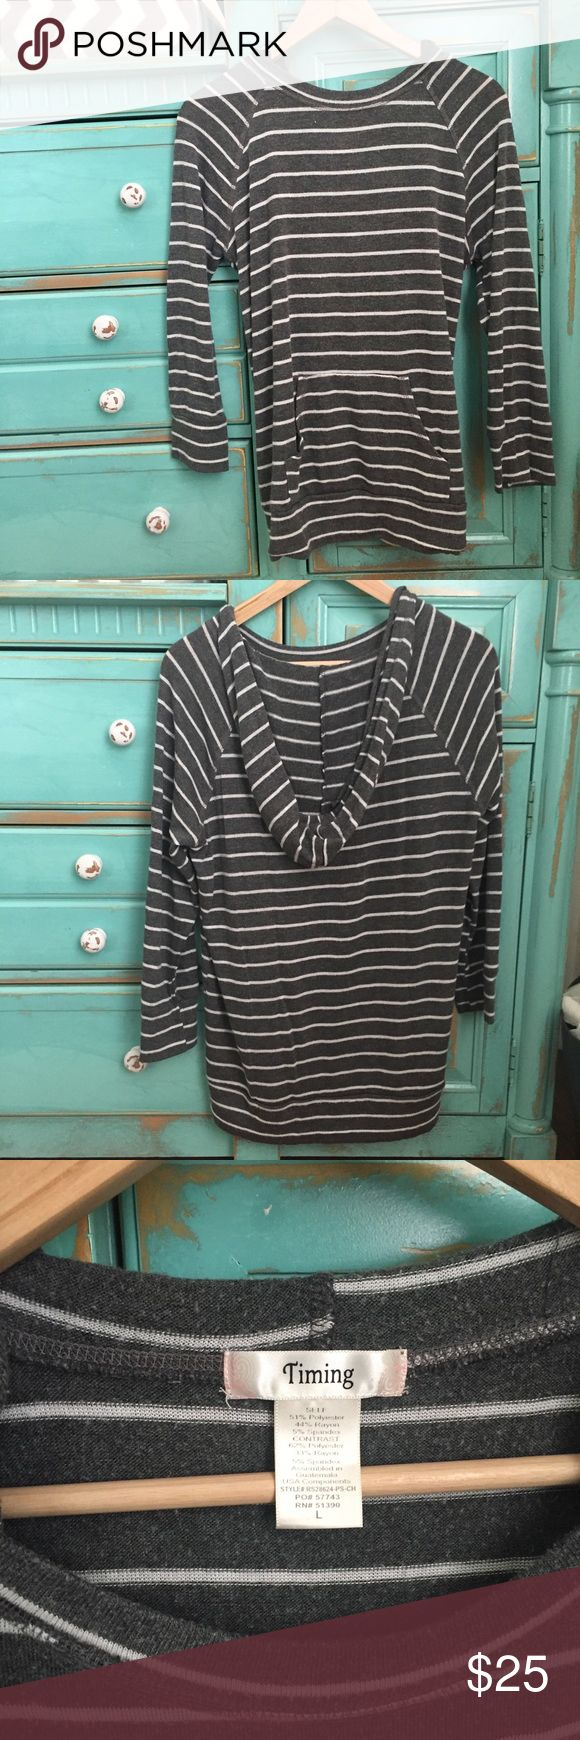 Striped Hoodie Light weight gray and white striped hoody. Scoop cut neckline. Quarter length sleeves. Extra long. Front pocket. Good condition. No flaws. Sweaters